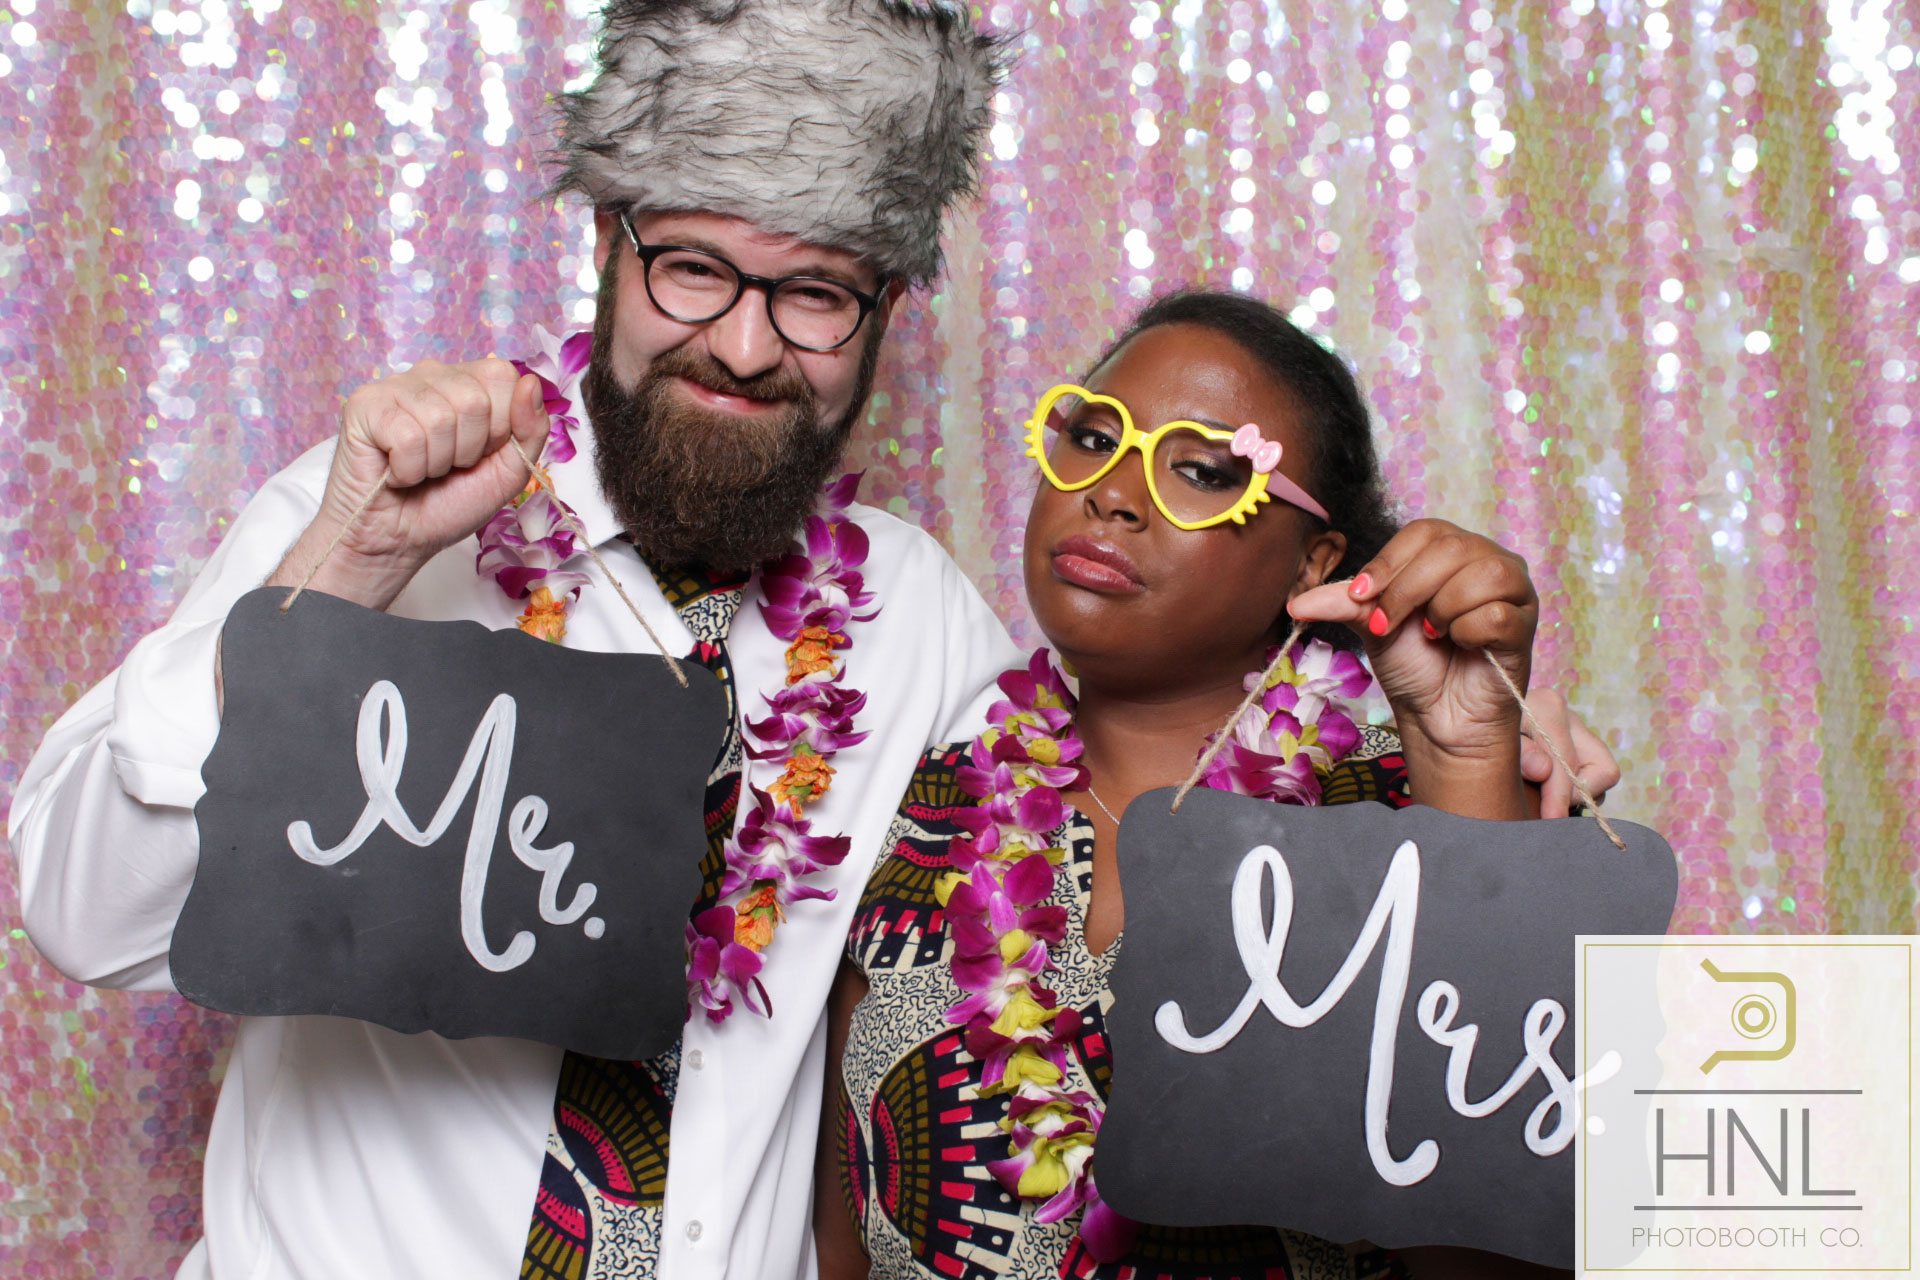 Yemi and Yang Wedding Photo booth Hiltion Hawaiian Village Resort Waikiki Oahu Hawaii -26.jpg